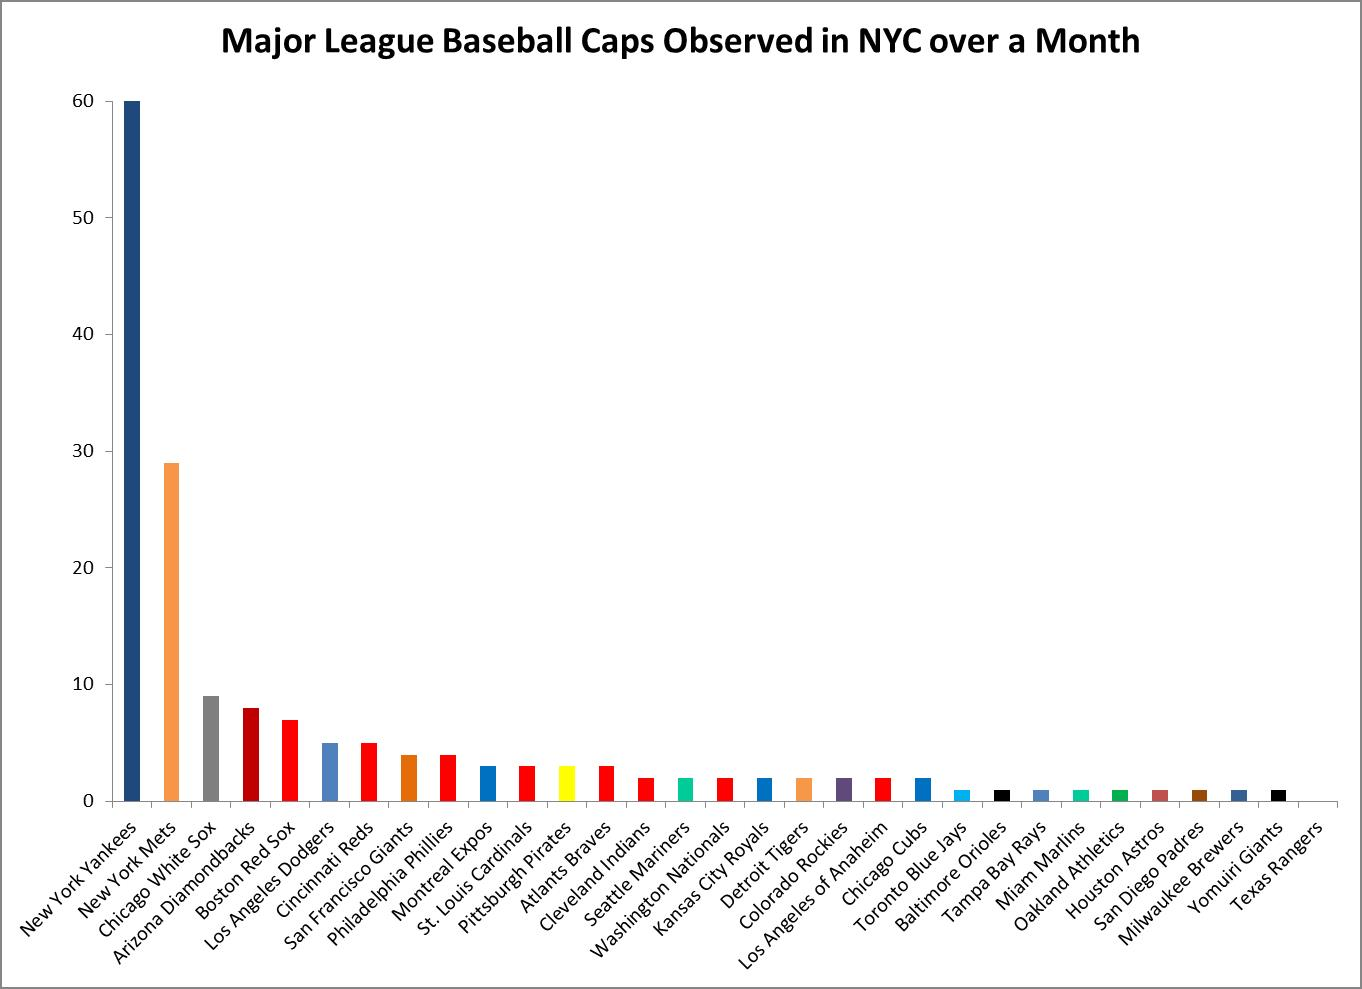 MLB caps observed in NYC over a month